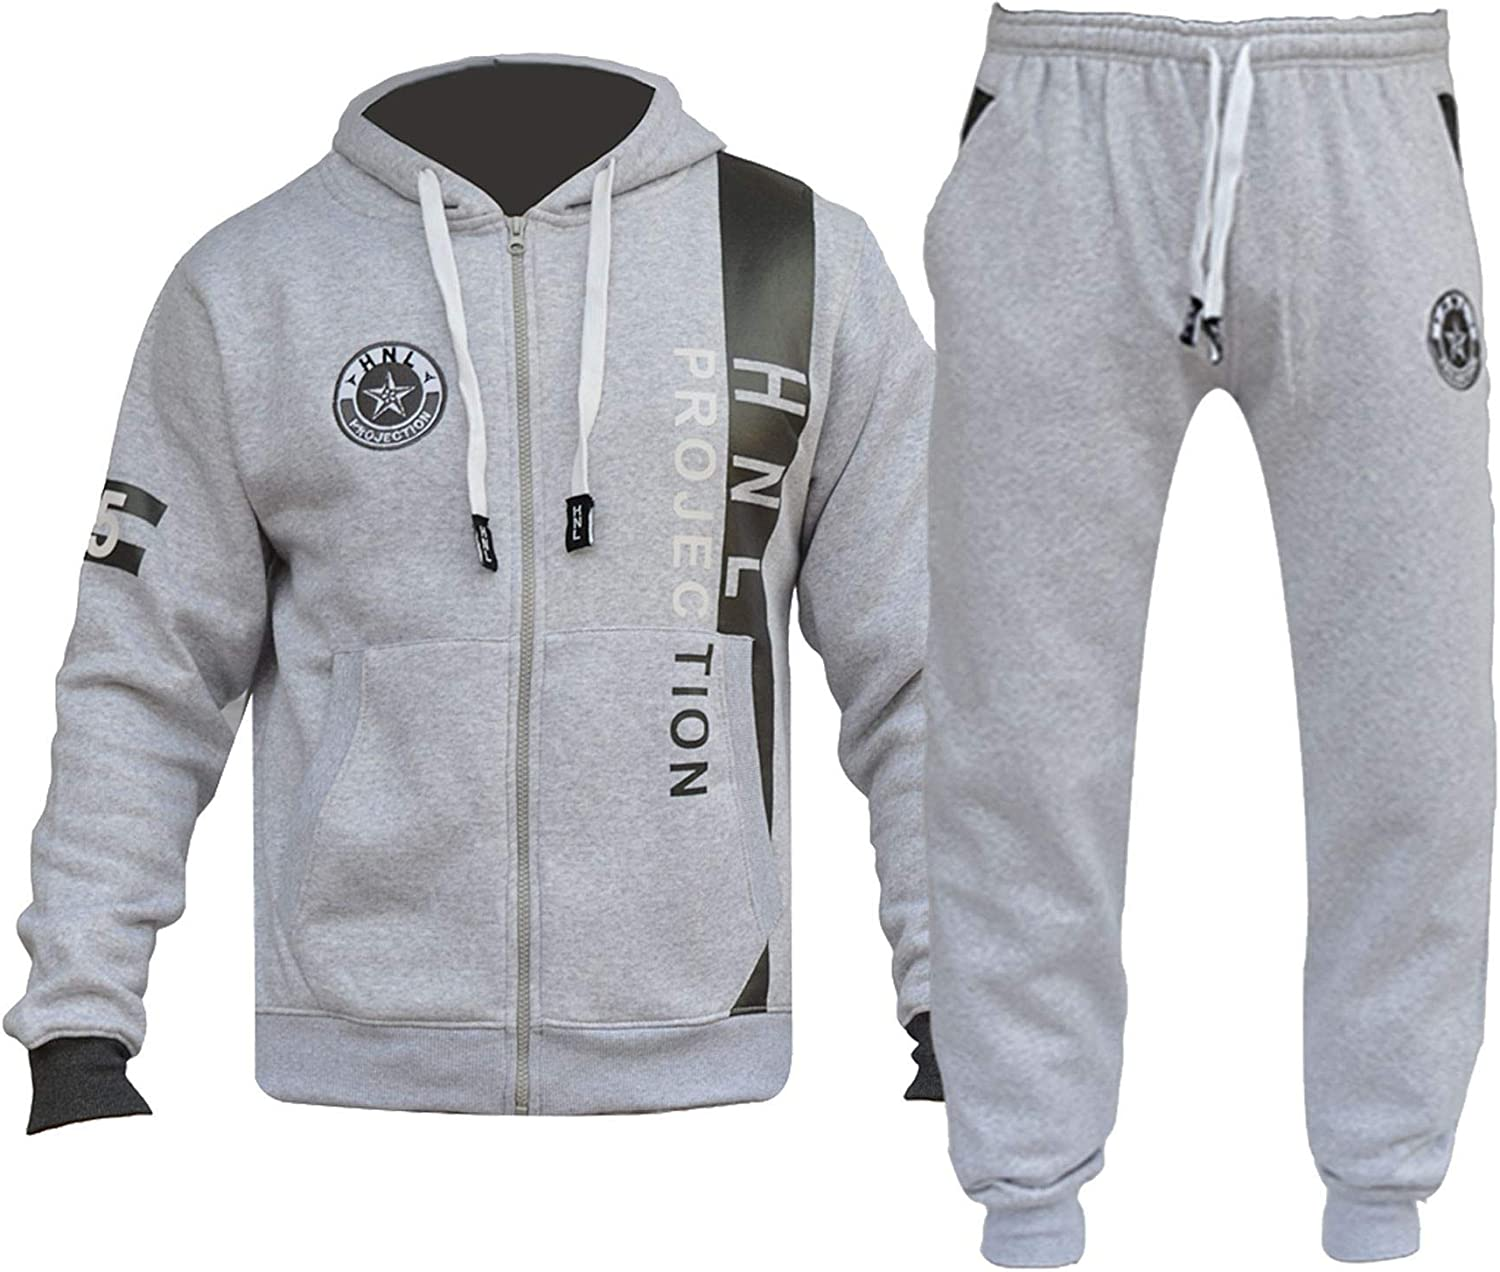 A2Z 4 Kids/® Kids Boys Girls Tracksuit Designers HNL Projection Print Zipped Top Hoodie /& Botom Jogging Suit Joggers New Age 7 8 9 10 11 12 13 Years